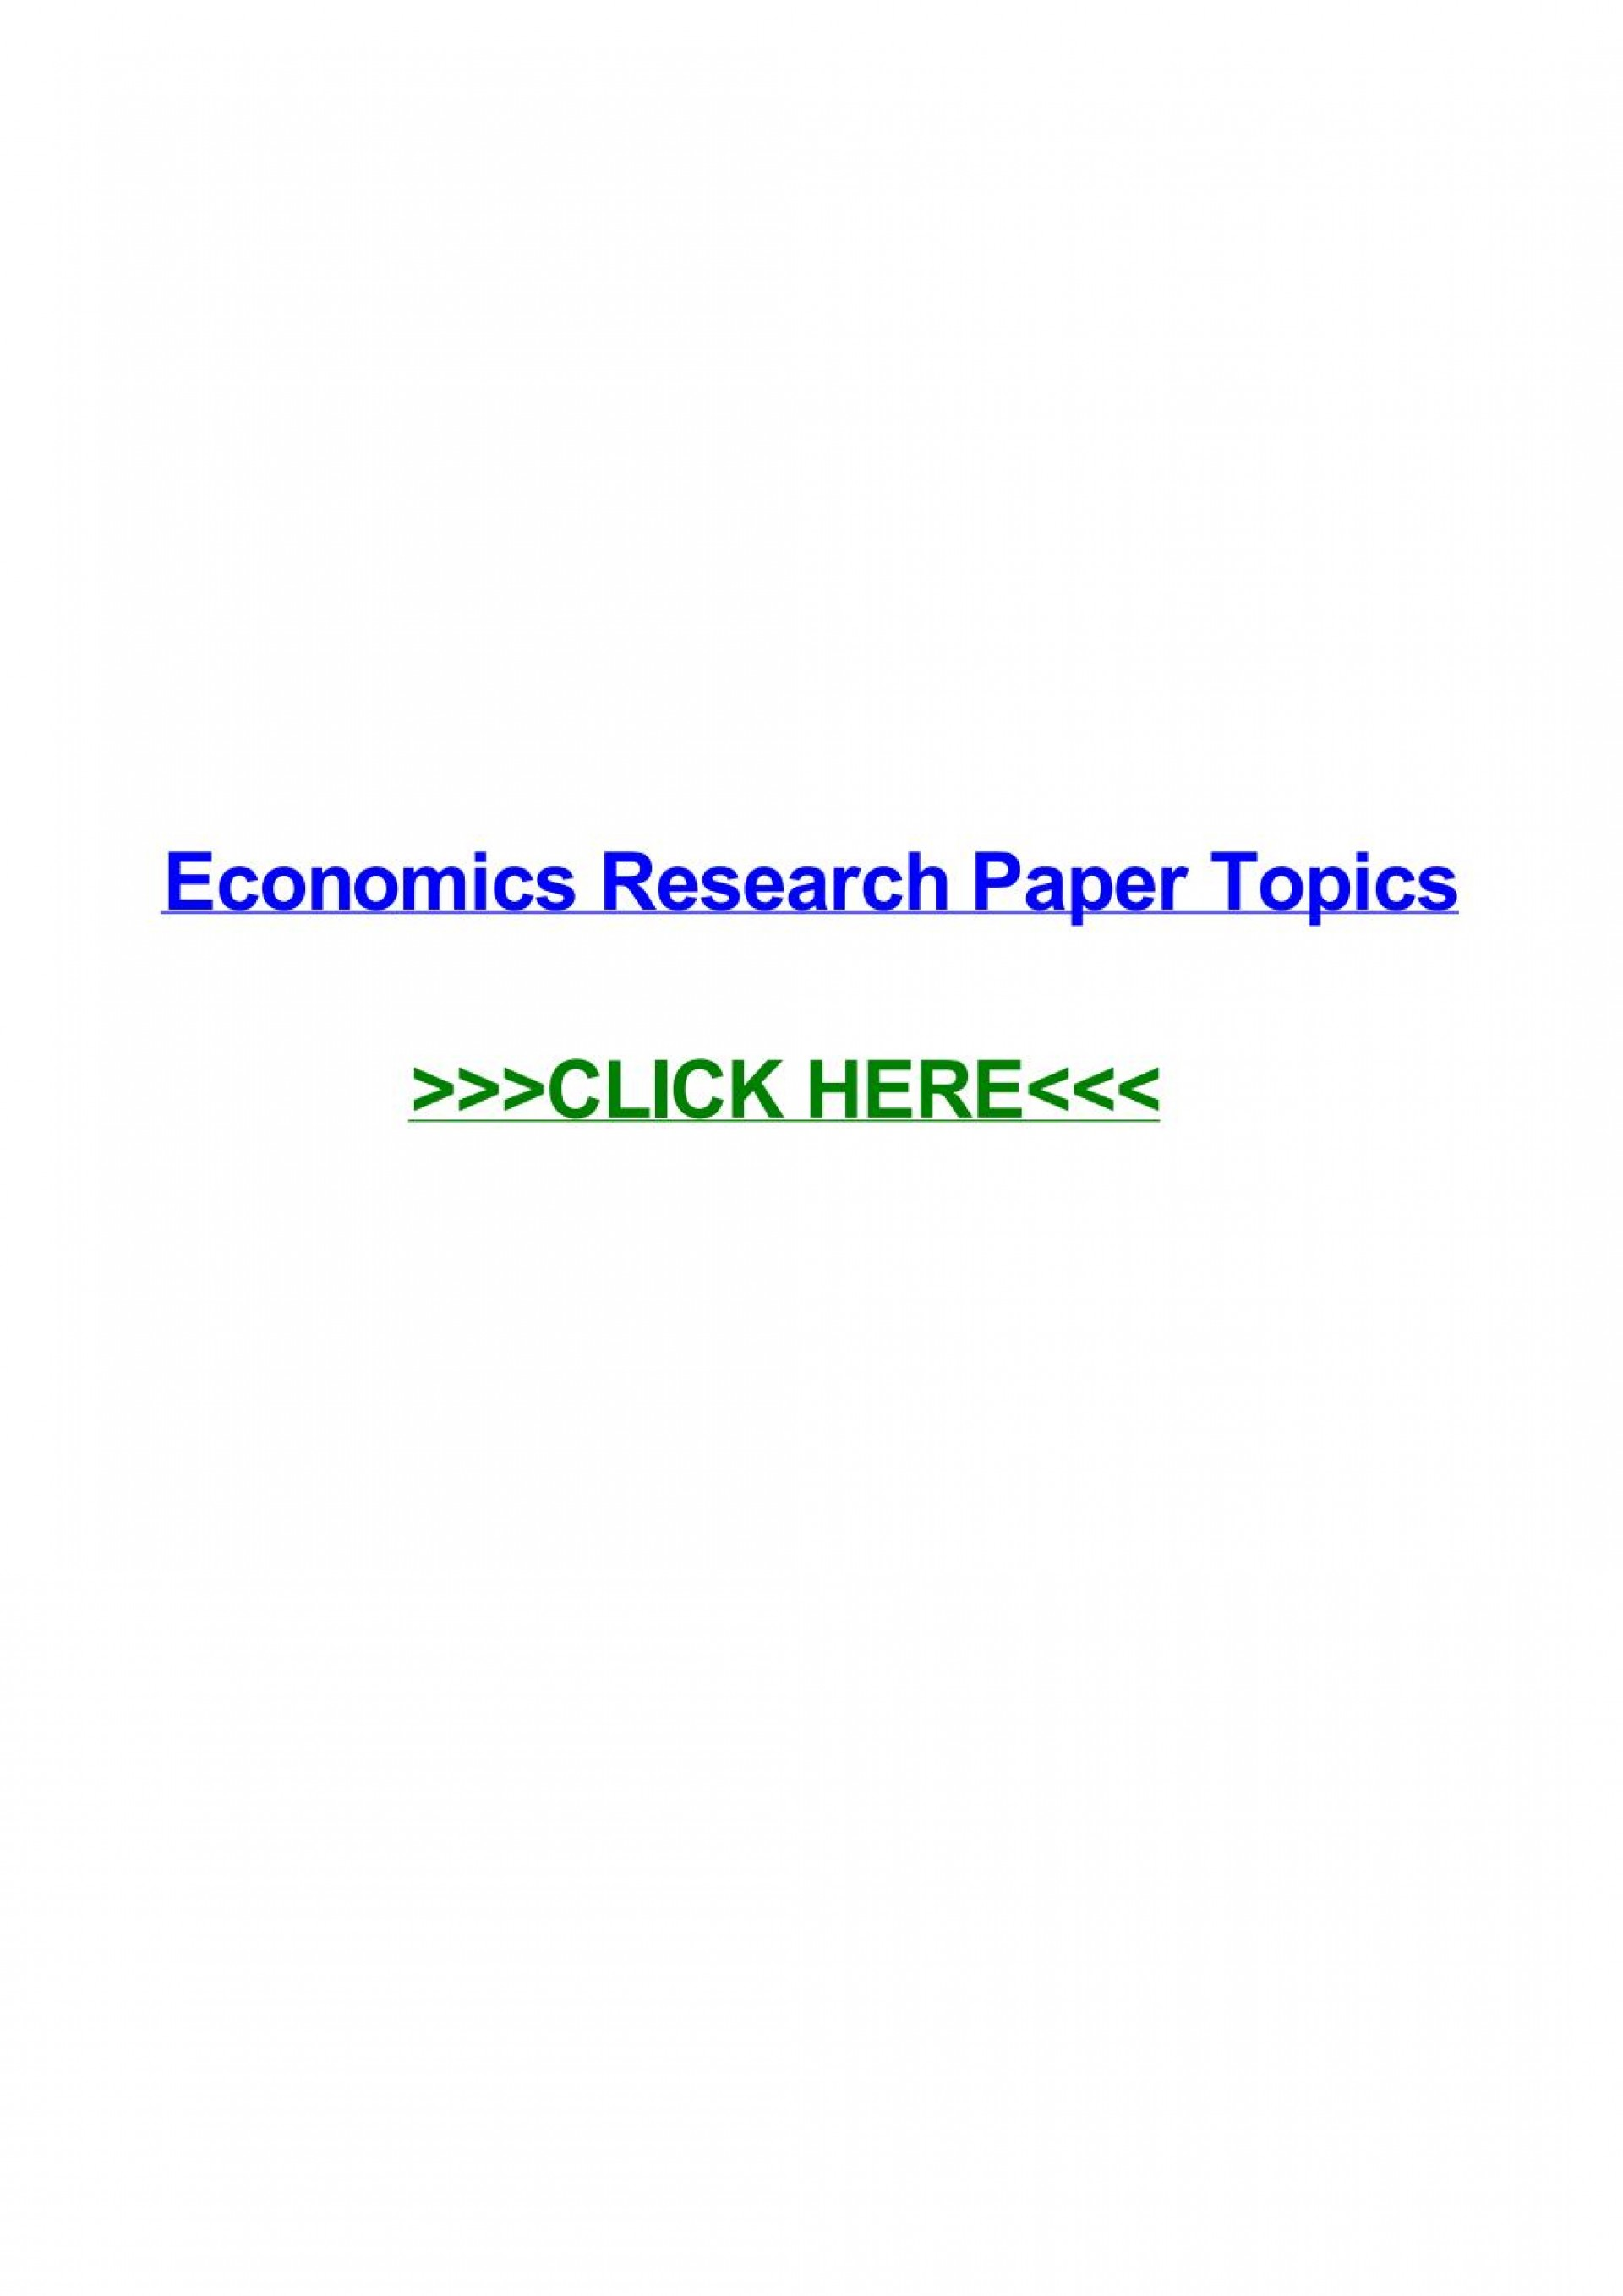 004 Research Paper Page 1 In Economics Stupendous Topics Finance Business International 1920